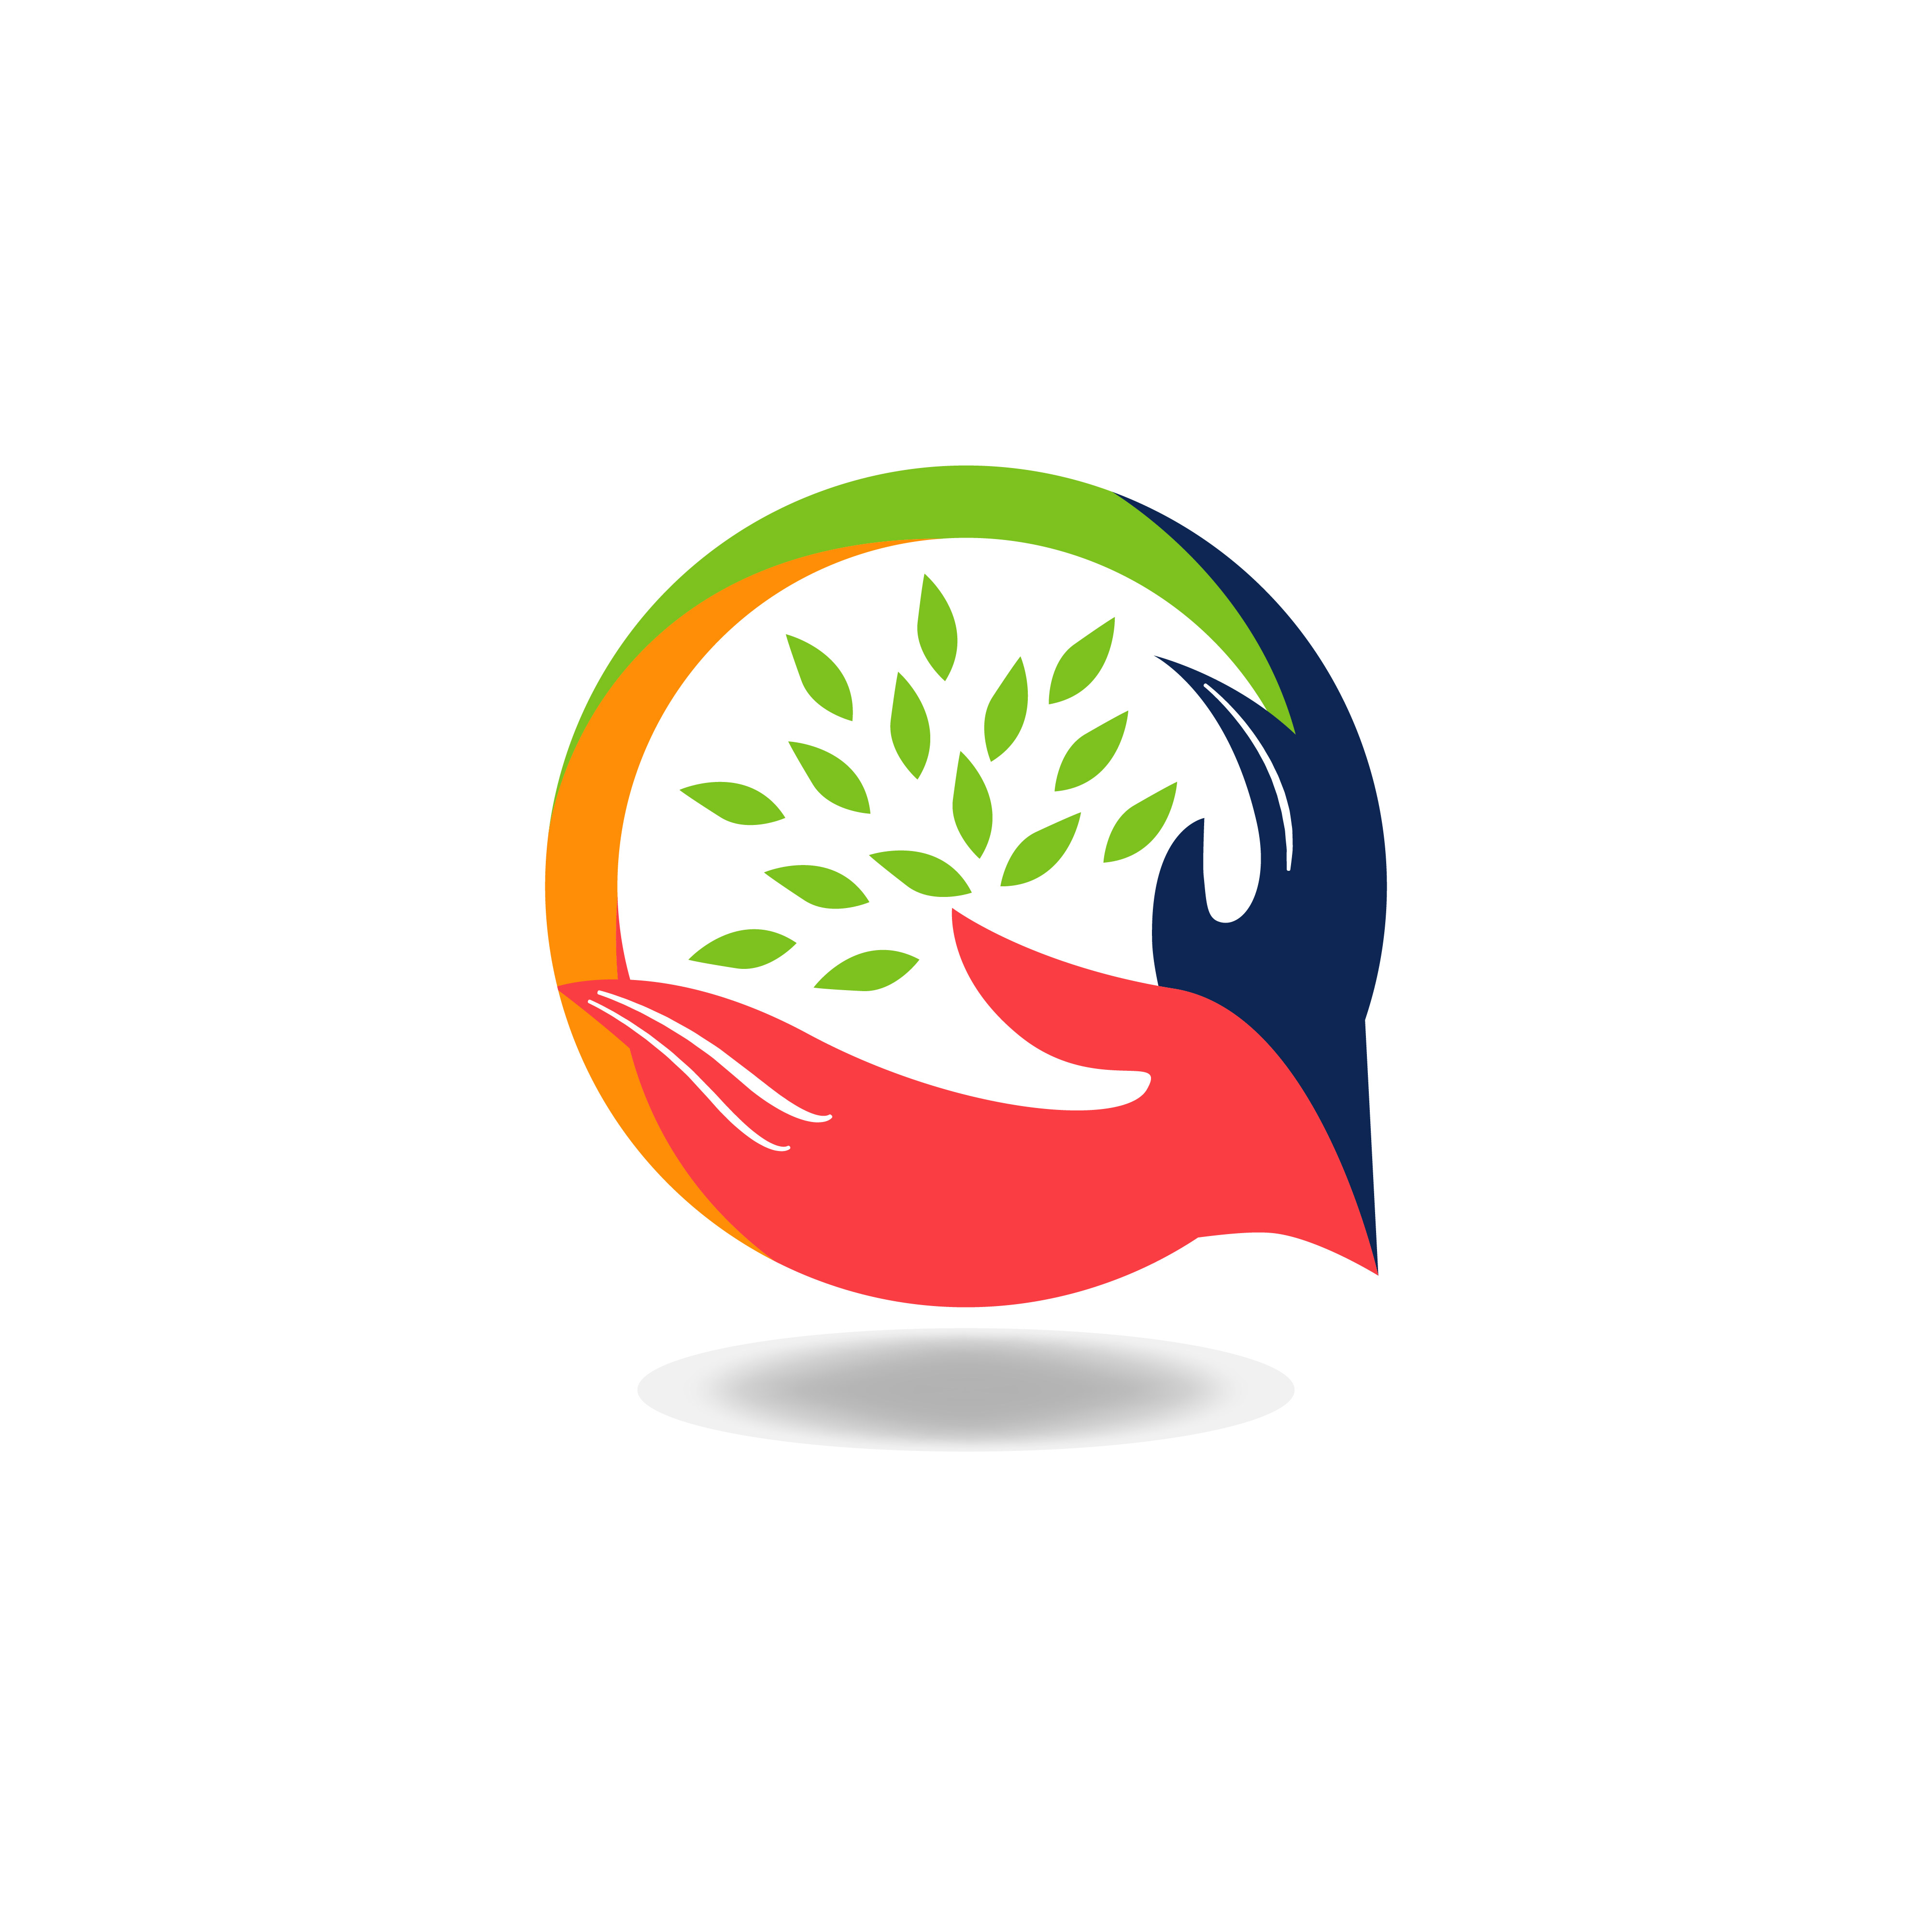 Hand Shake With Leaves Logo